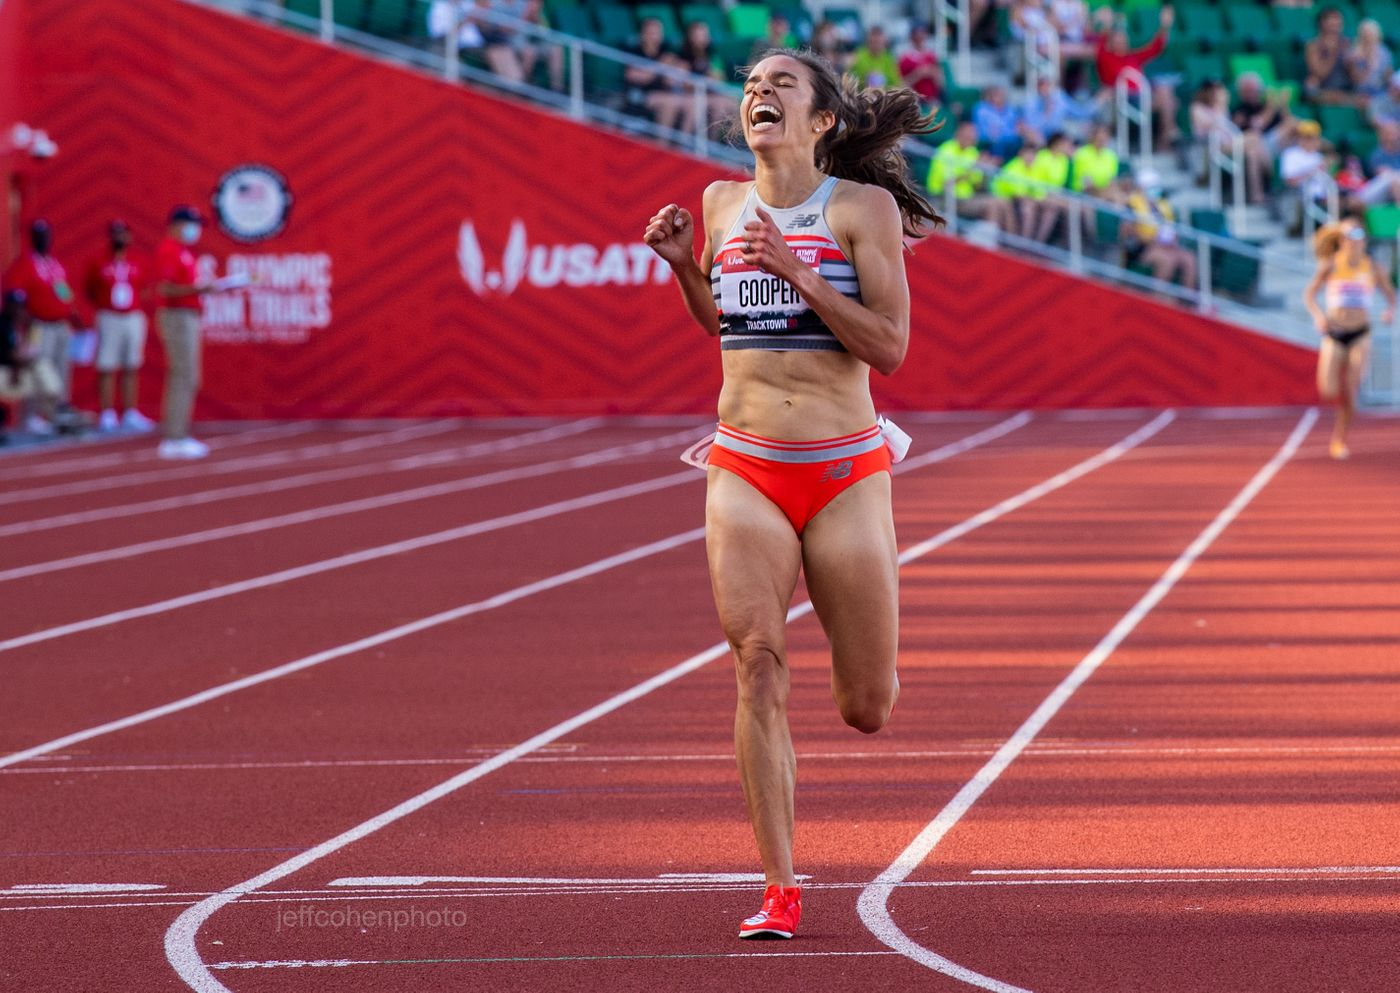 cooper-5000w-2021-US-Oly-Trials-day-12232-jeff-cohen-photo--web.jpg